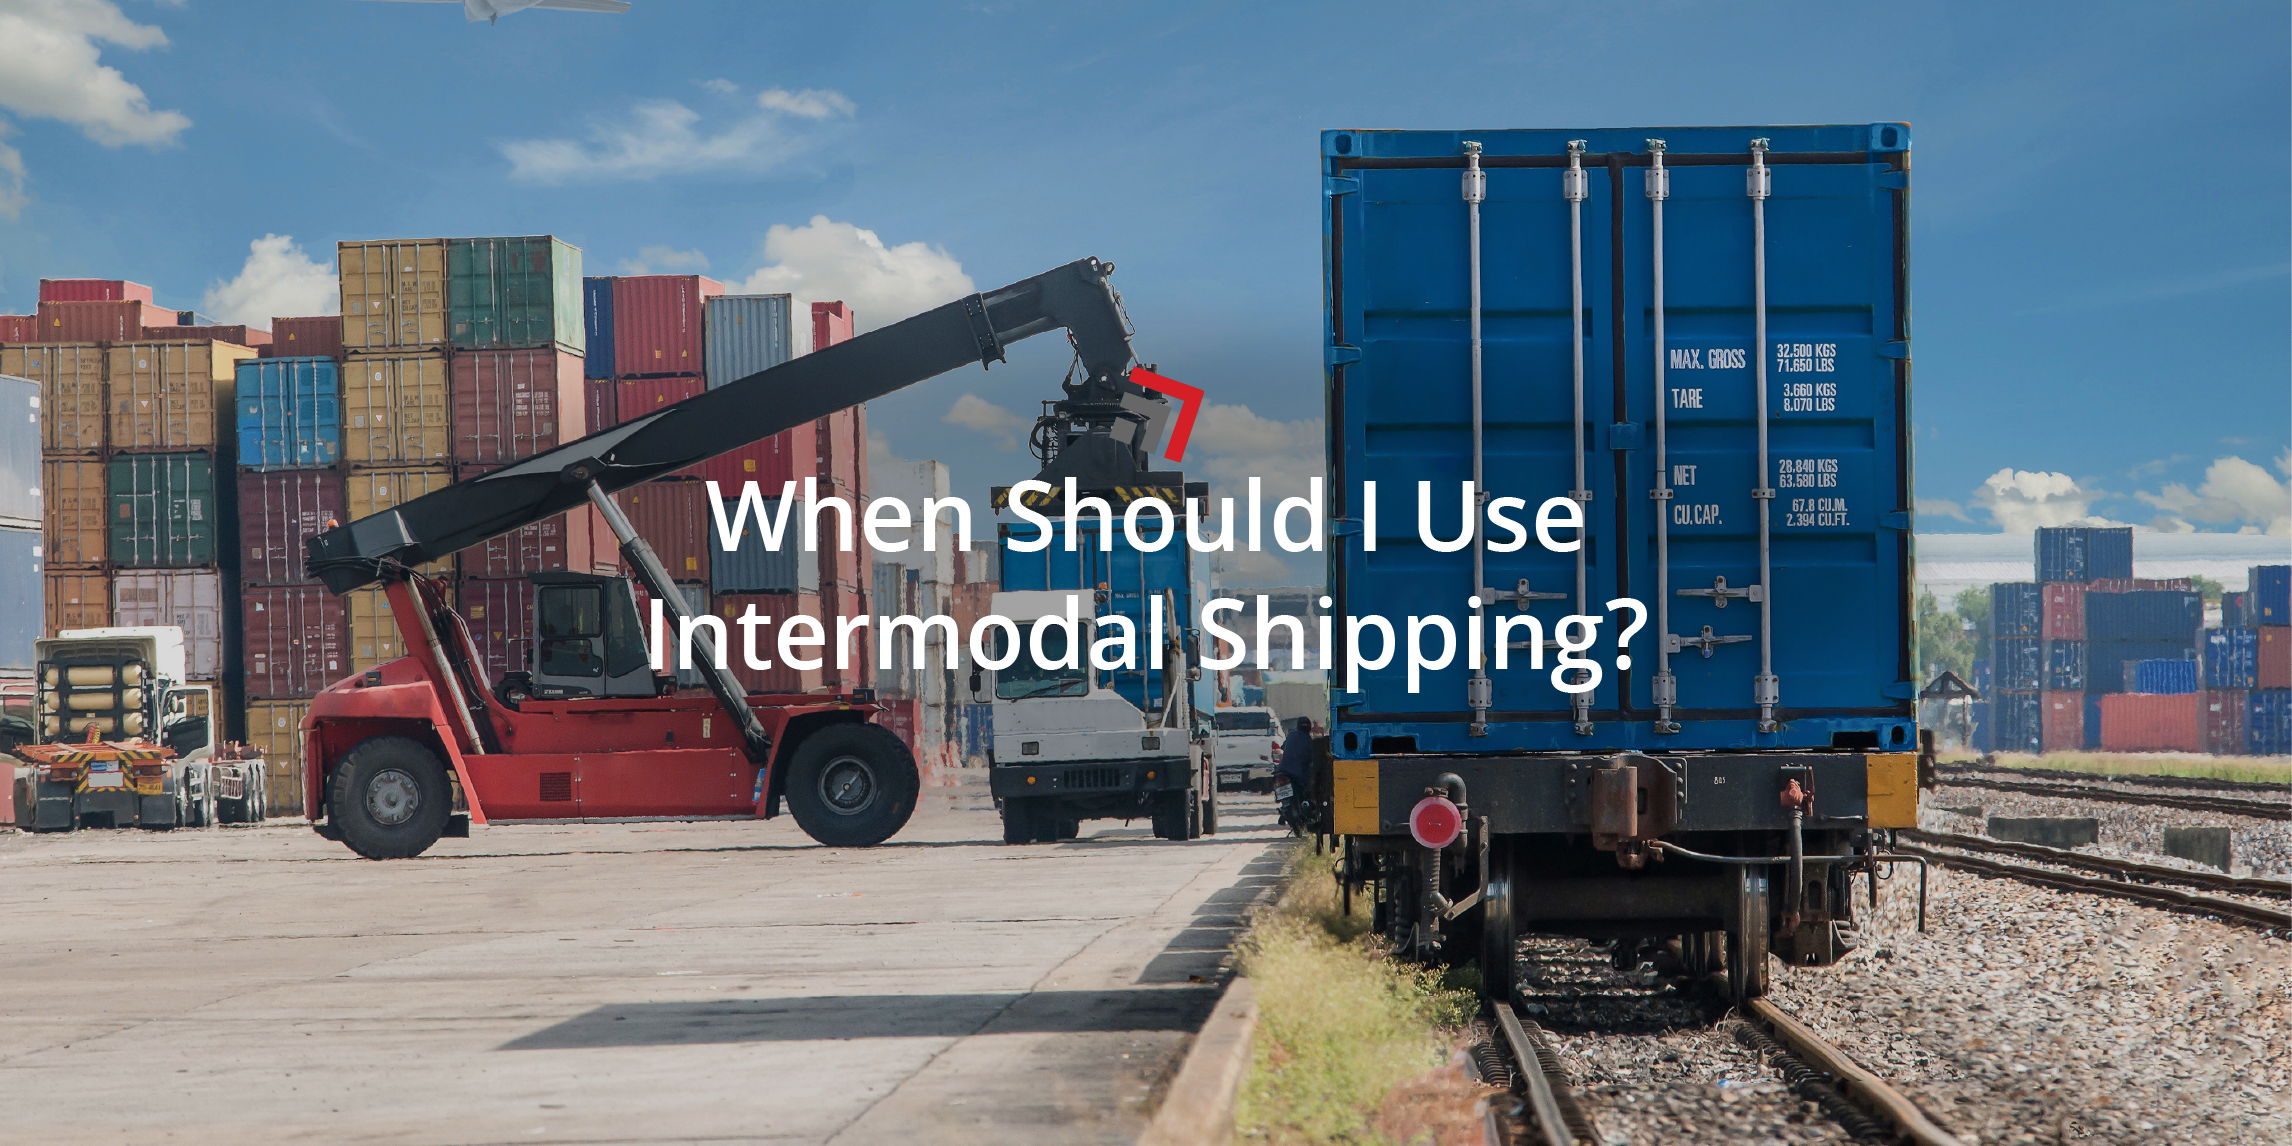 When-Should-I-Use-Intermodal-Shipping